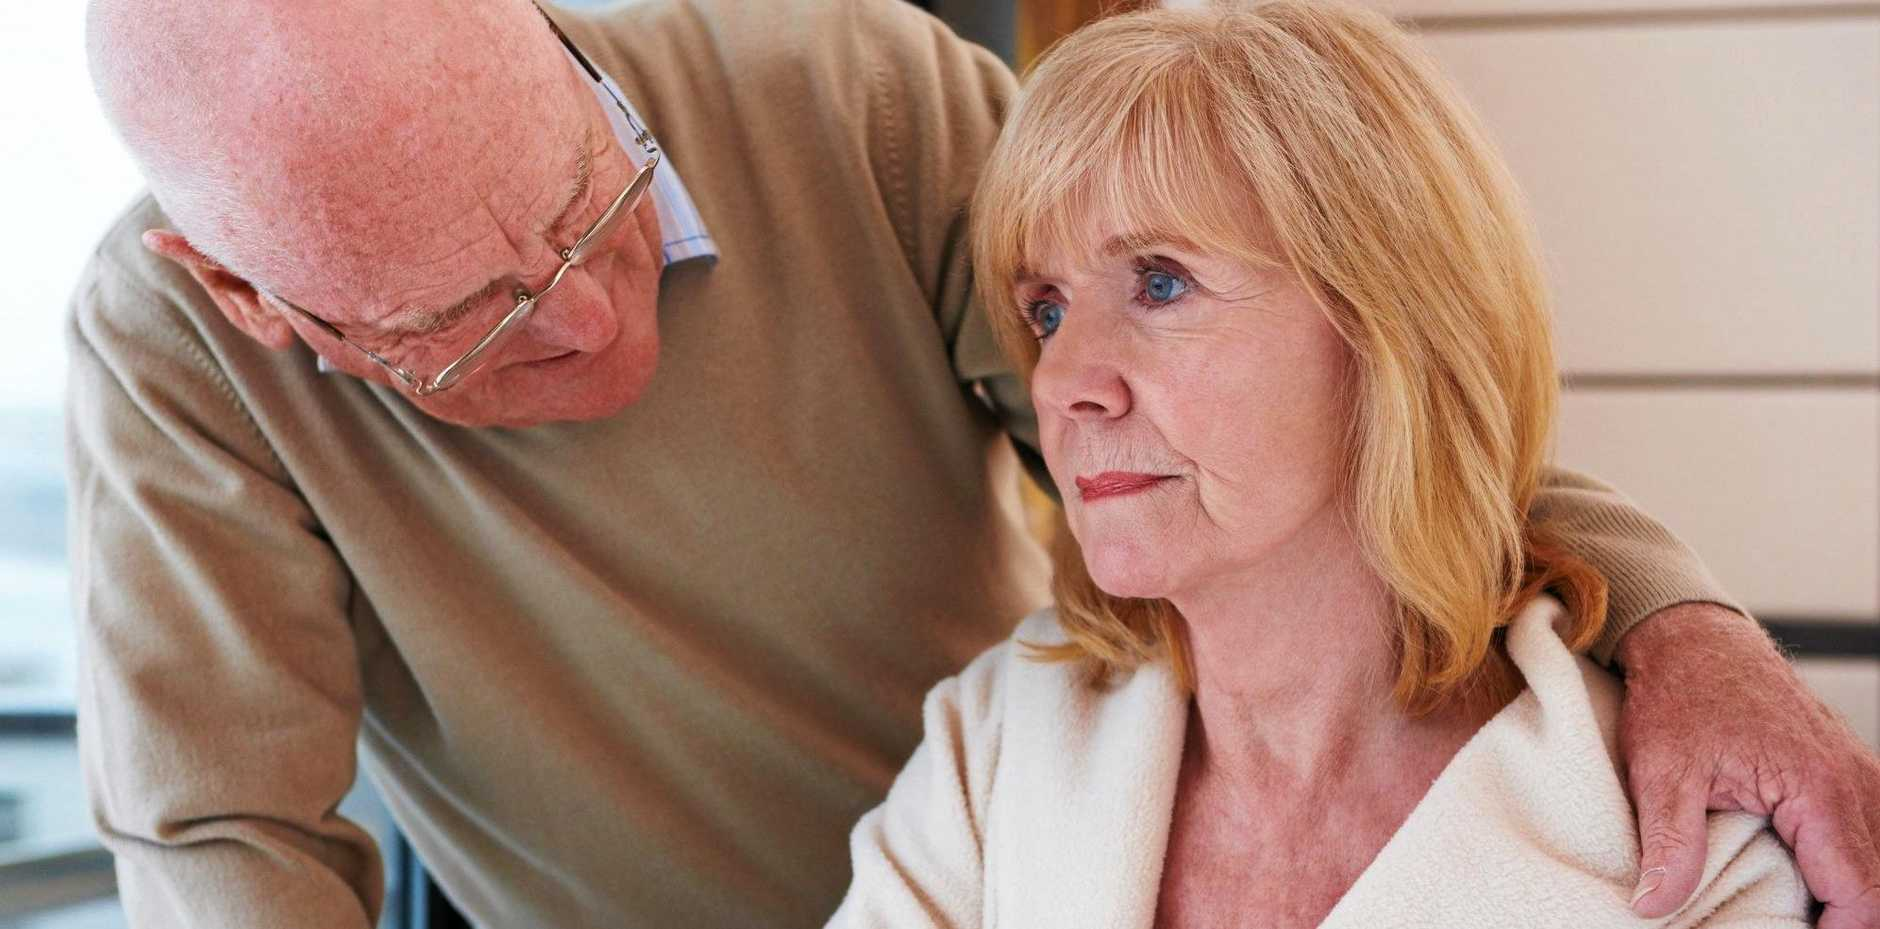 UNDERSTANDING PAIN: Chronic surgical pain often remains difficult for seniors to understand and deal with both physically and mentally.